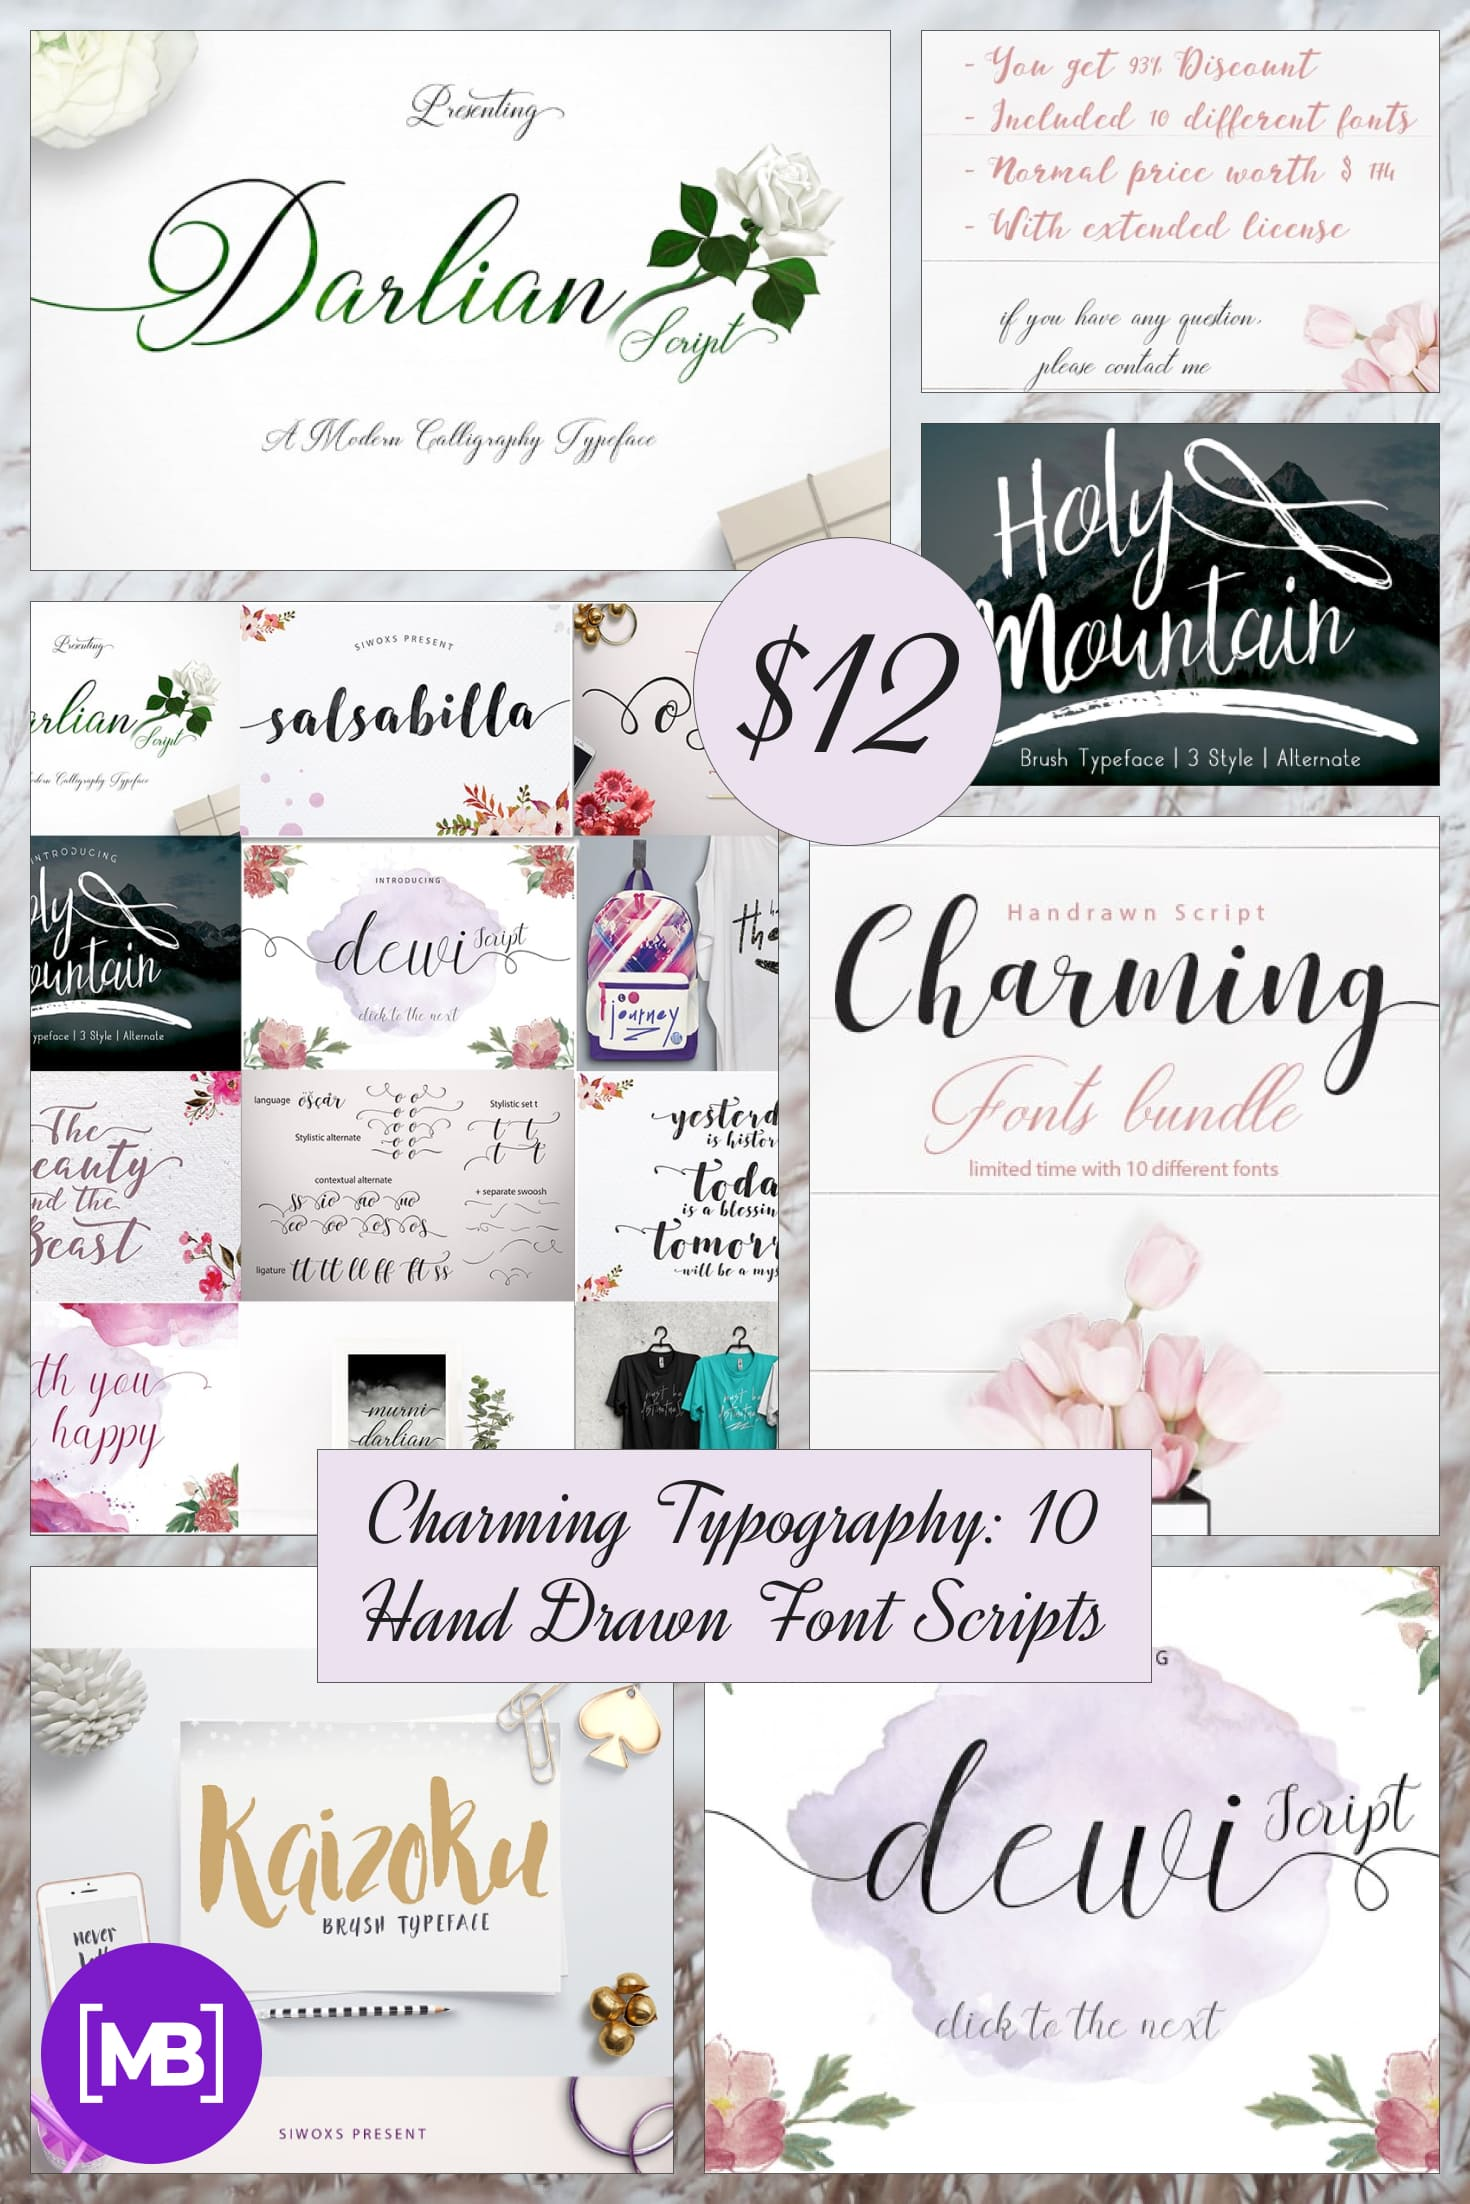 Charming Typography: 10 Hand Drawn Font Scripts - just $12. Collage Image.